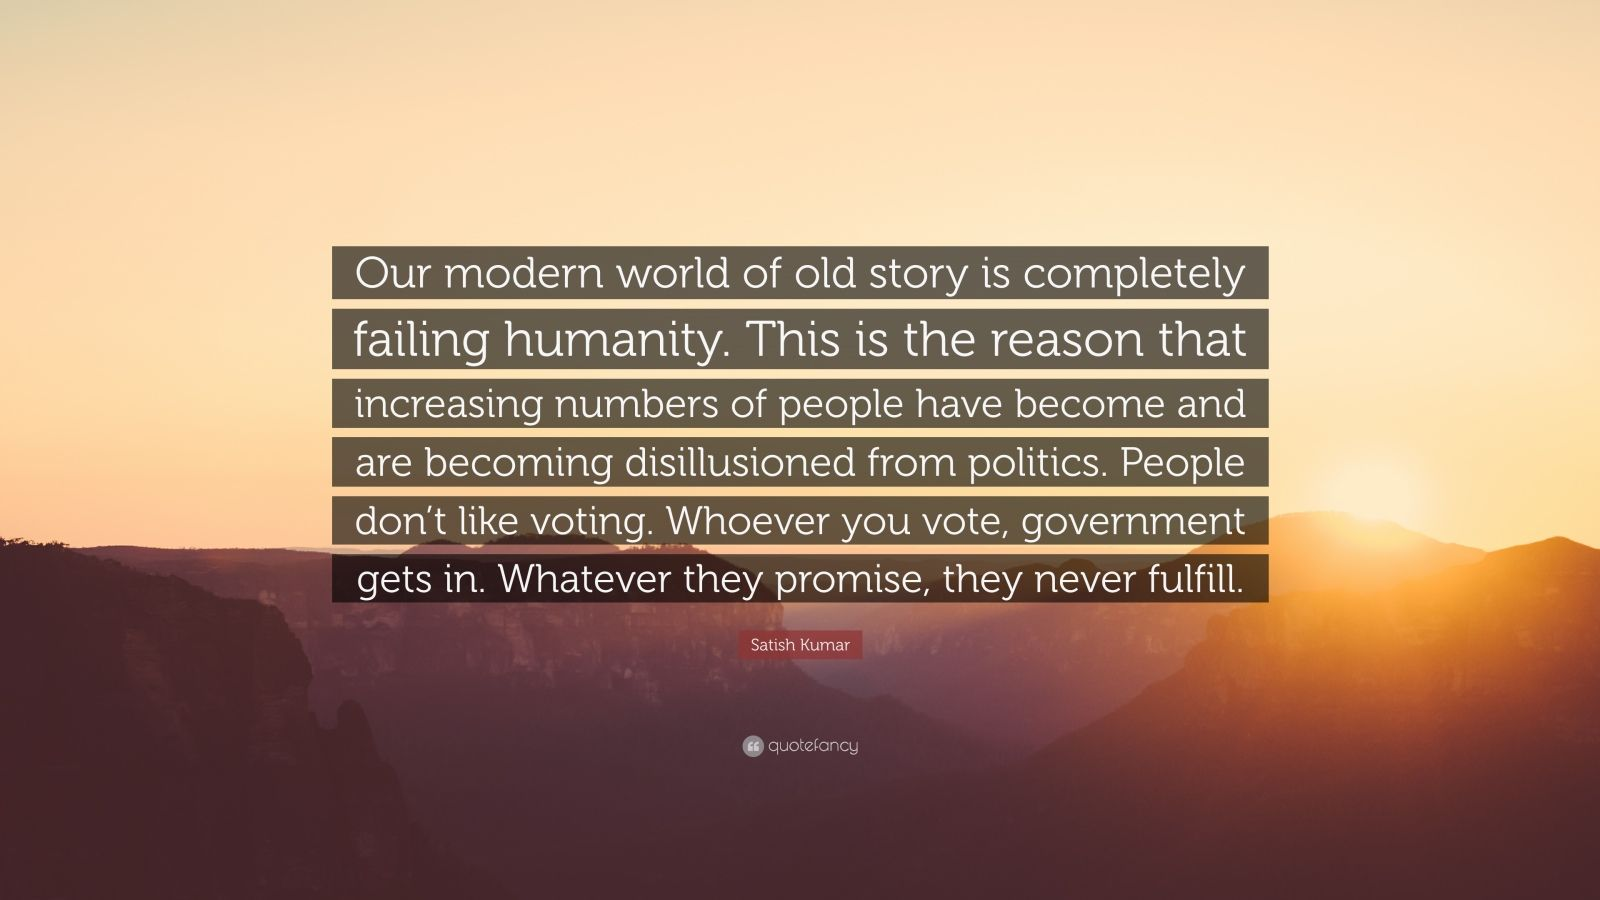 """Satish Kumar Quote: """"Our modern world of old story is completely failing humanity. This is the reason that increasing numbers of people have become and are becoming disillusioned from politics. People don't like voting. Whoever you vote, government gets in. Whatever they promise, they never fulfill."""""""